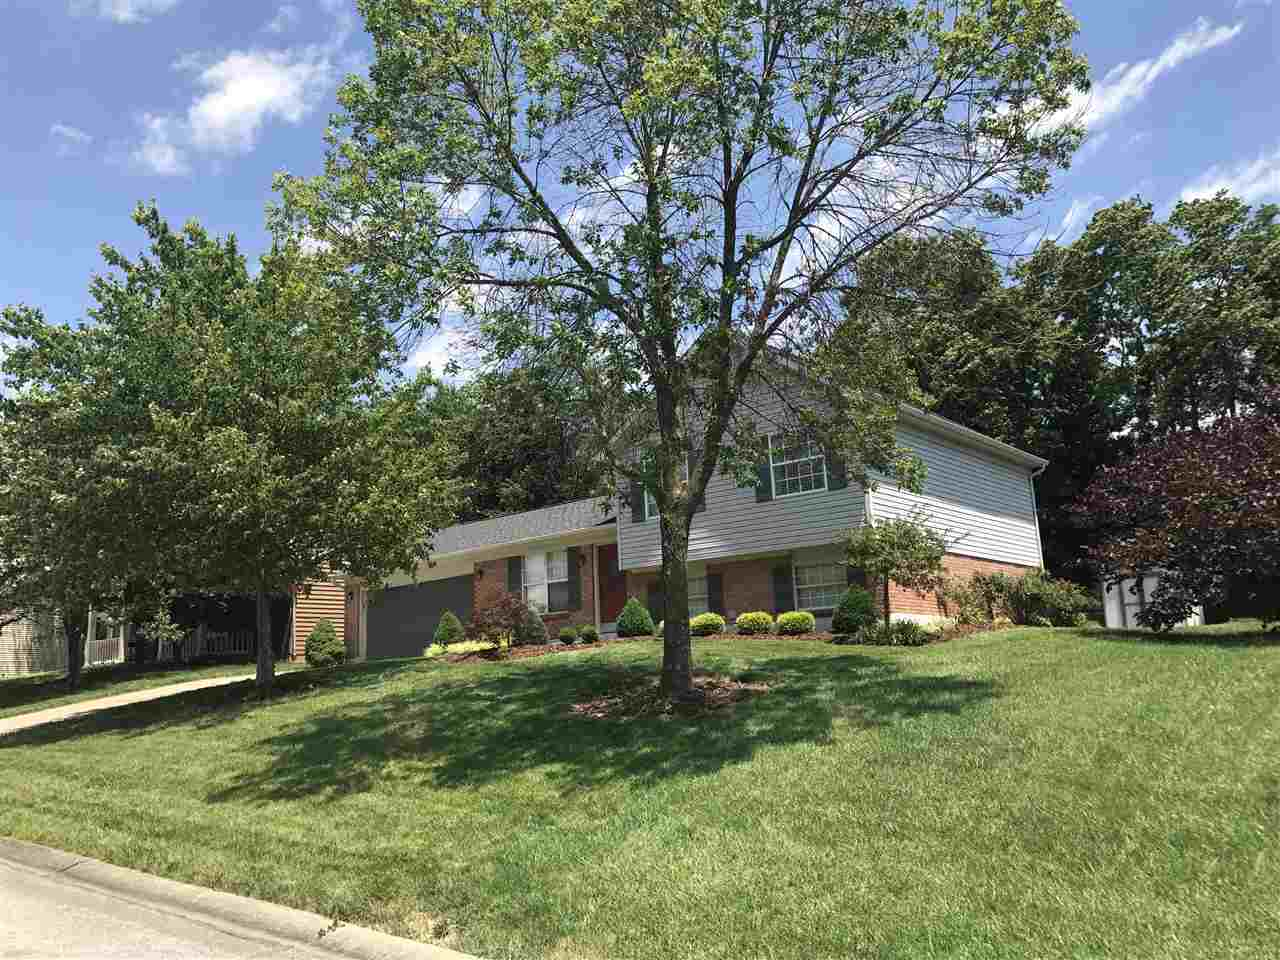 Photo 1 for 3129 Kirkpatrick Ct Burlington, KY 41005